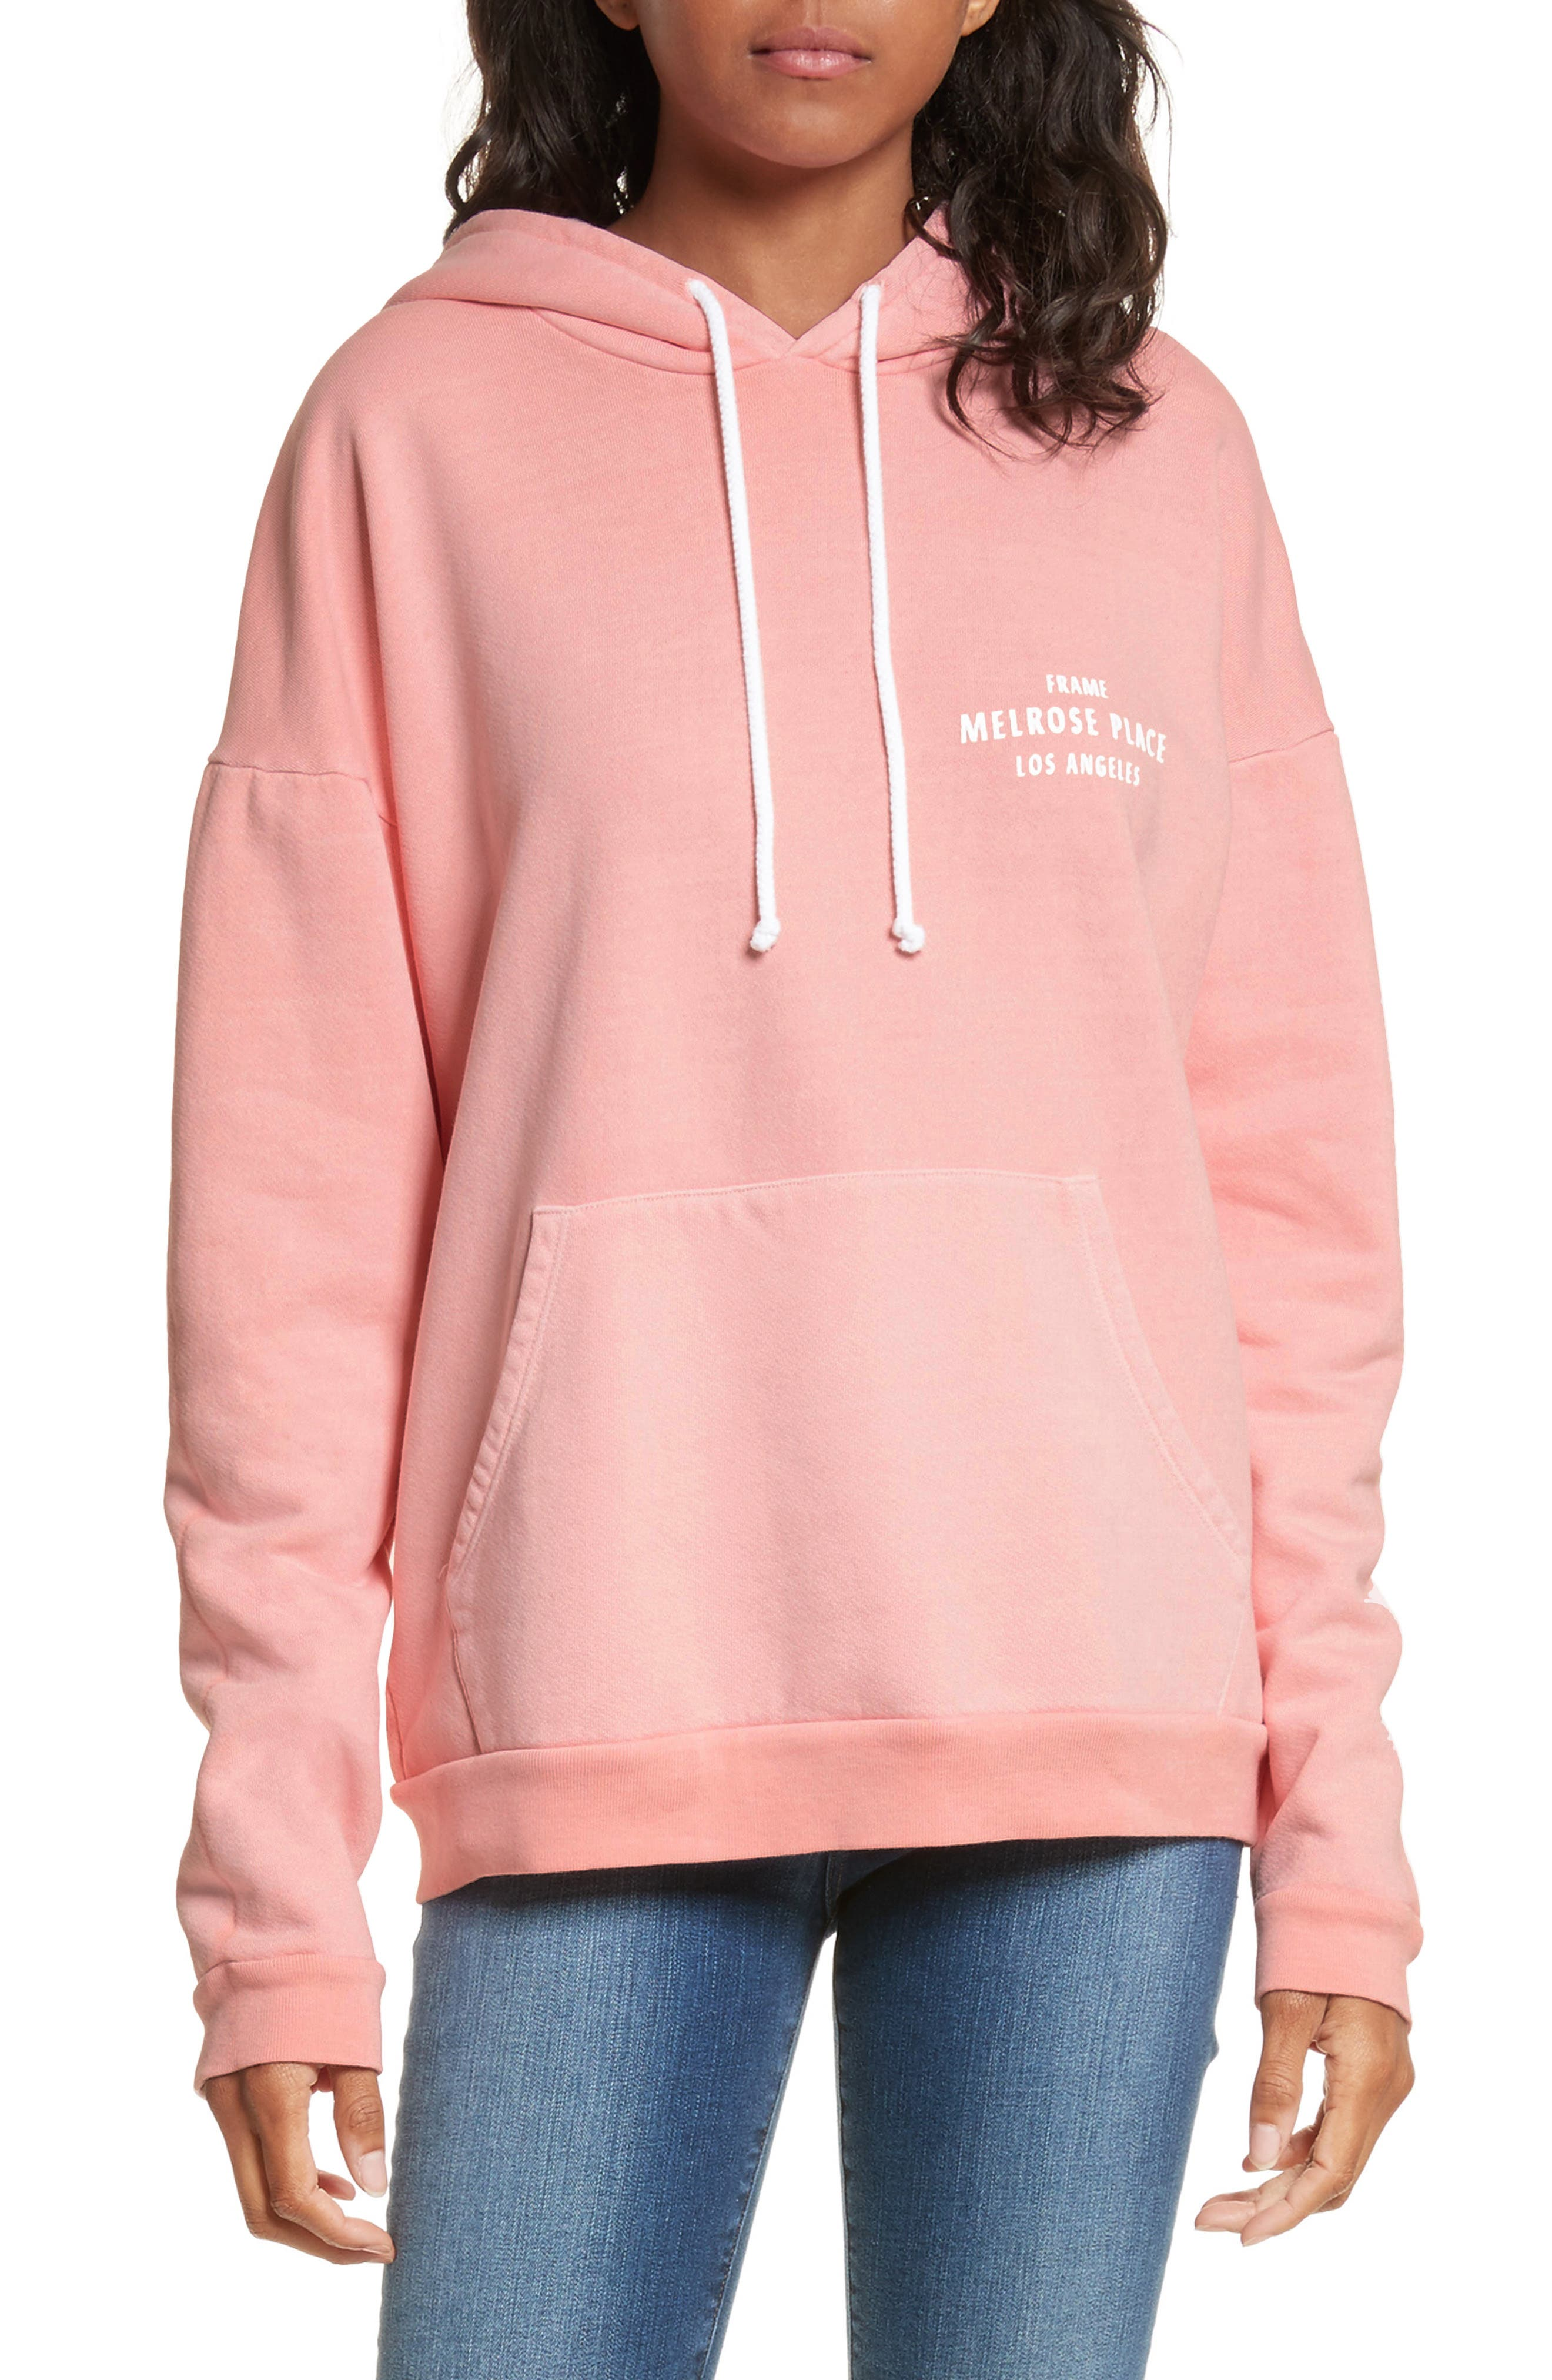 Oversize Hoodie,                         Main,                         color, Faded Light Pink